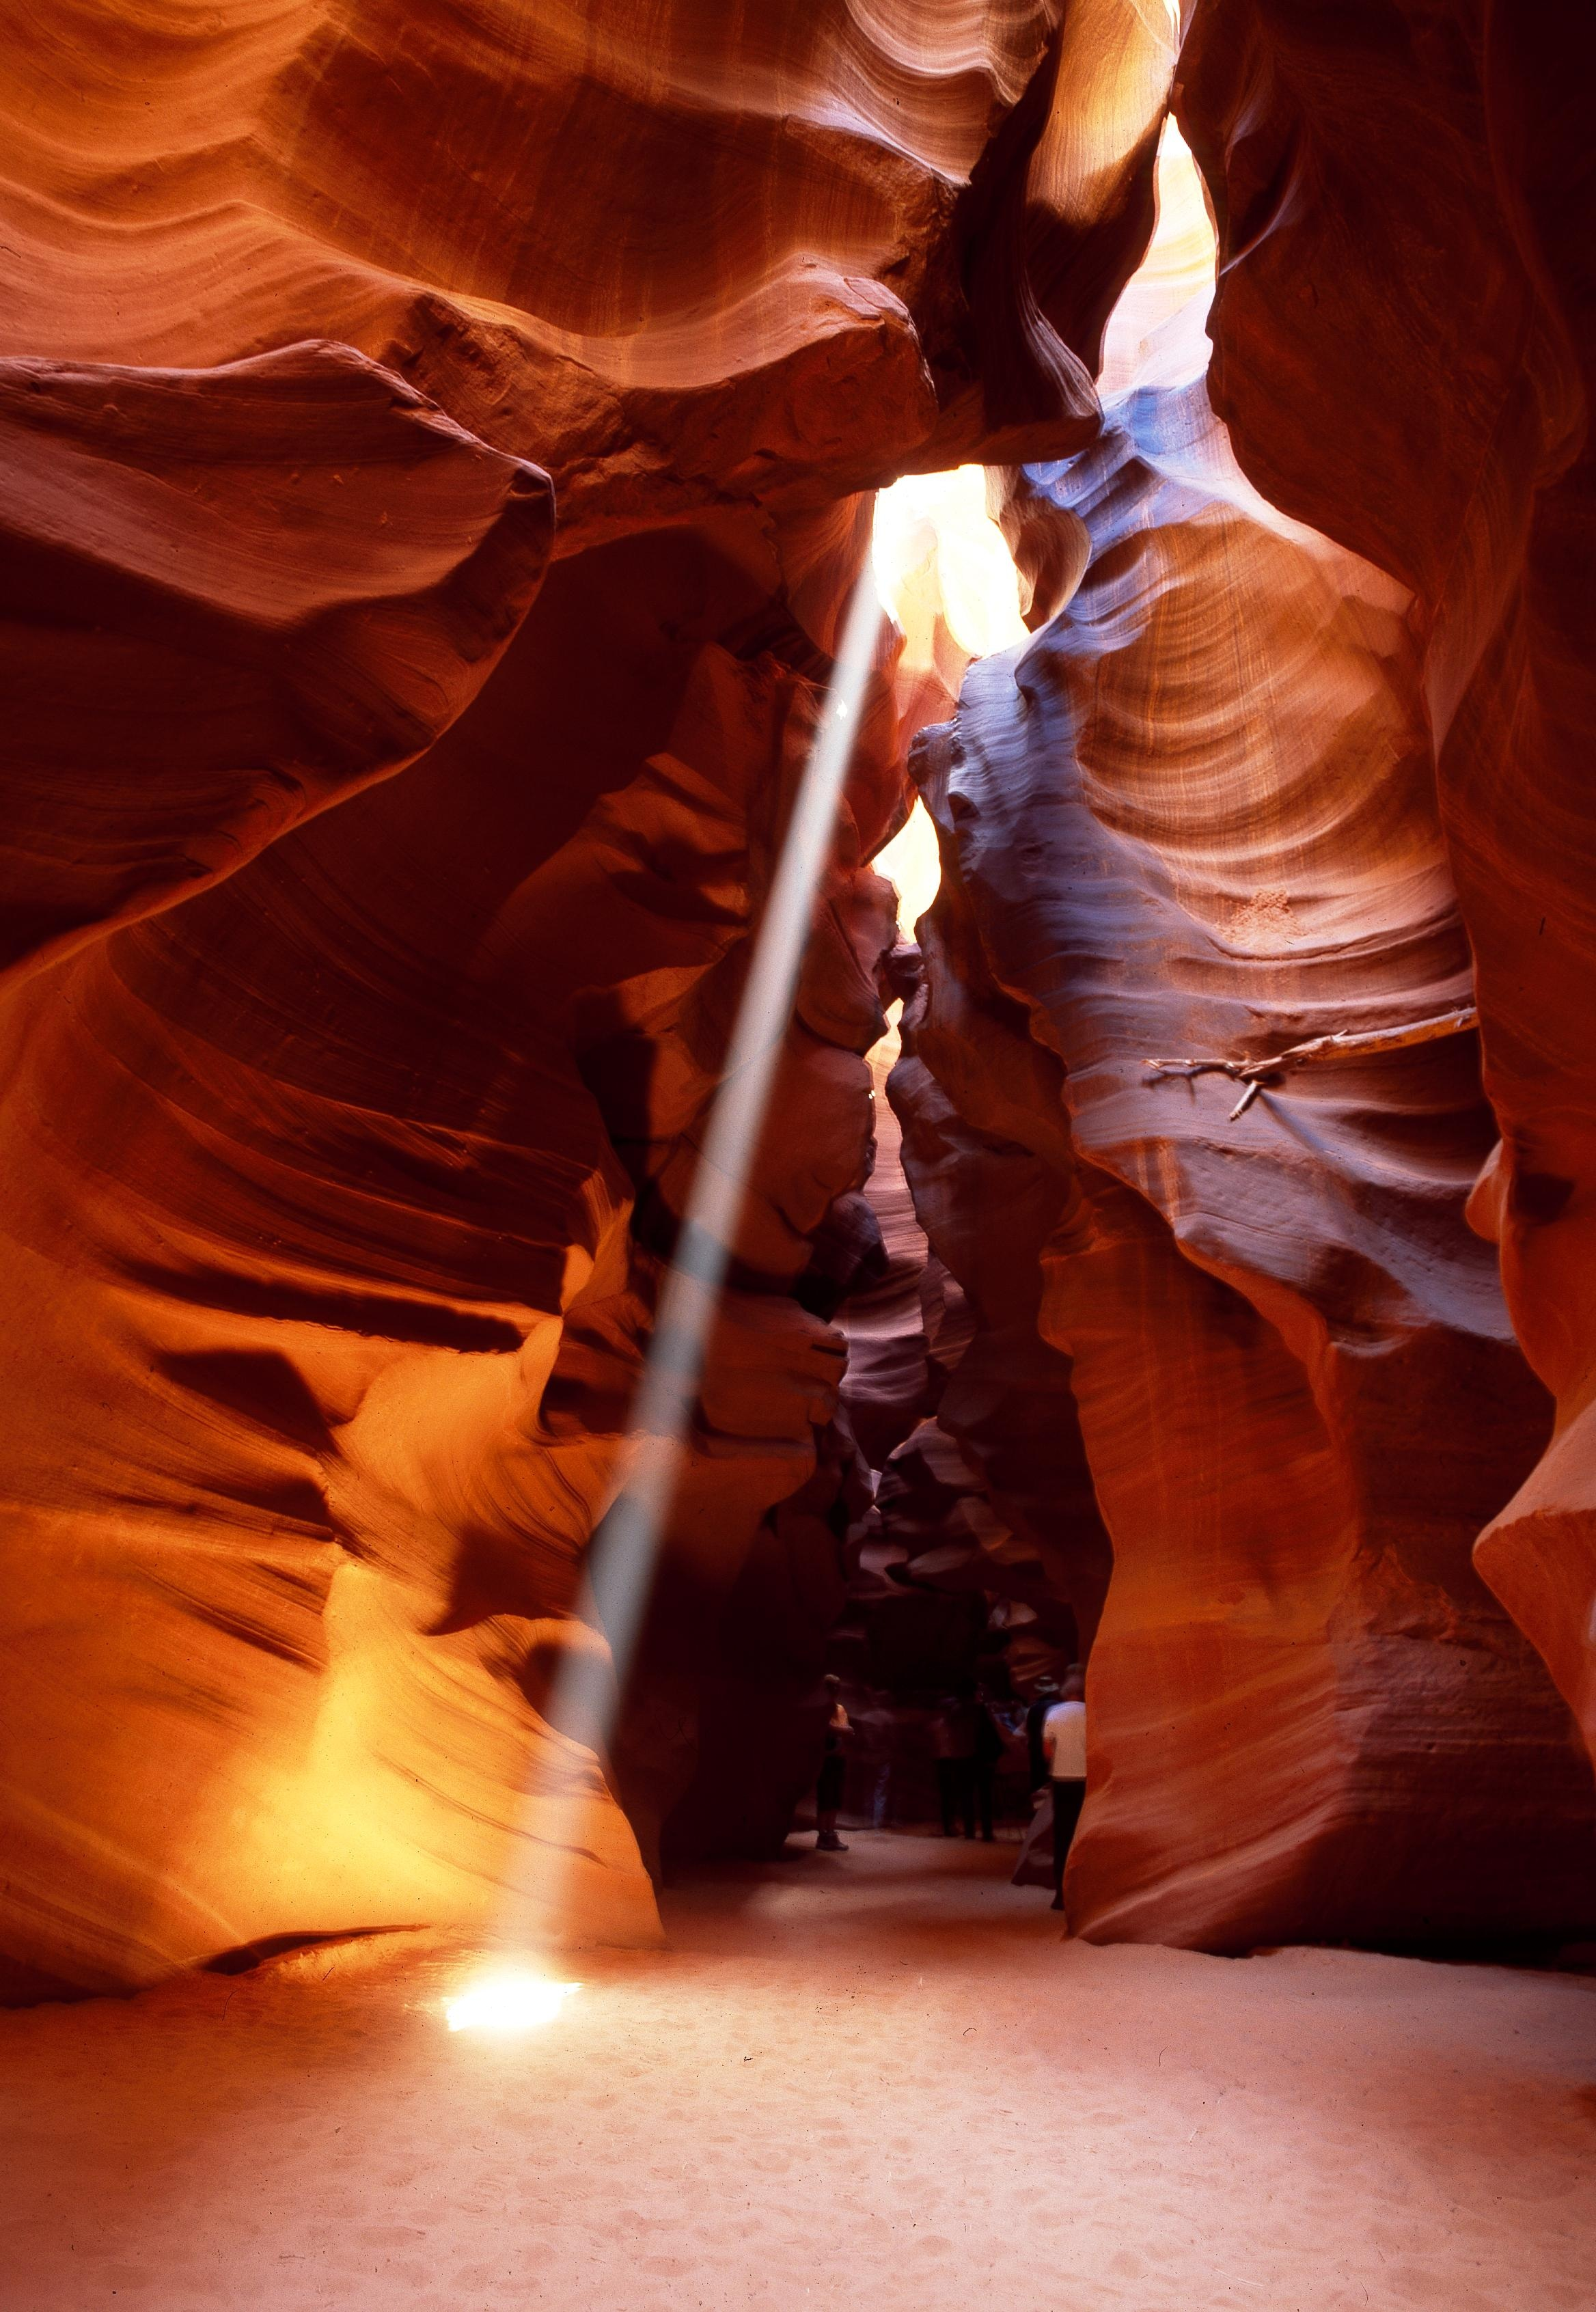 Slot canyon photo